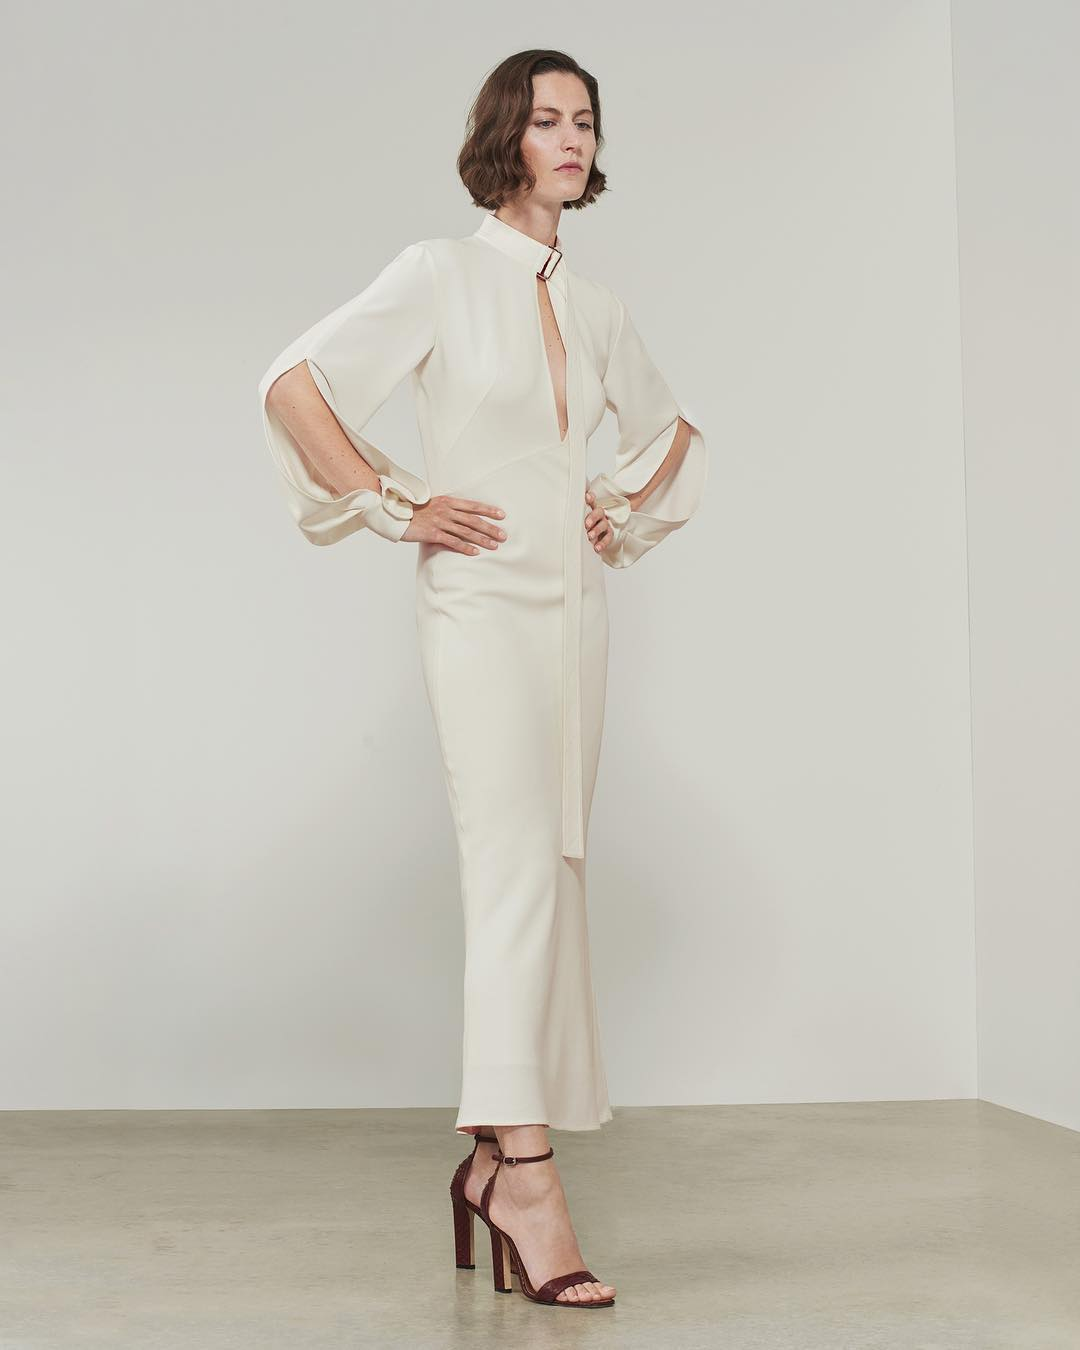 Open Sleeve Midi Dress In White By Victoria Beckham 2021